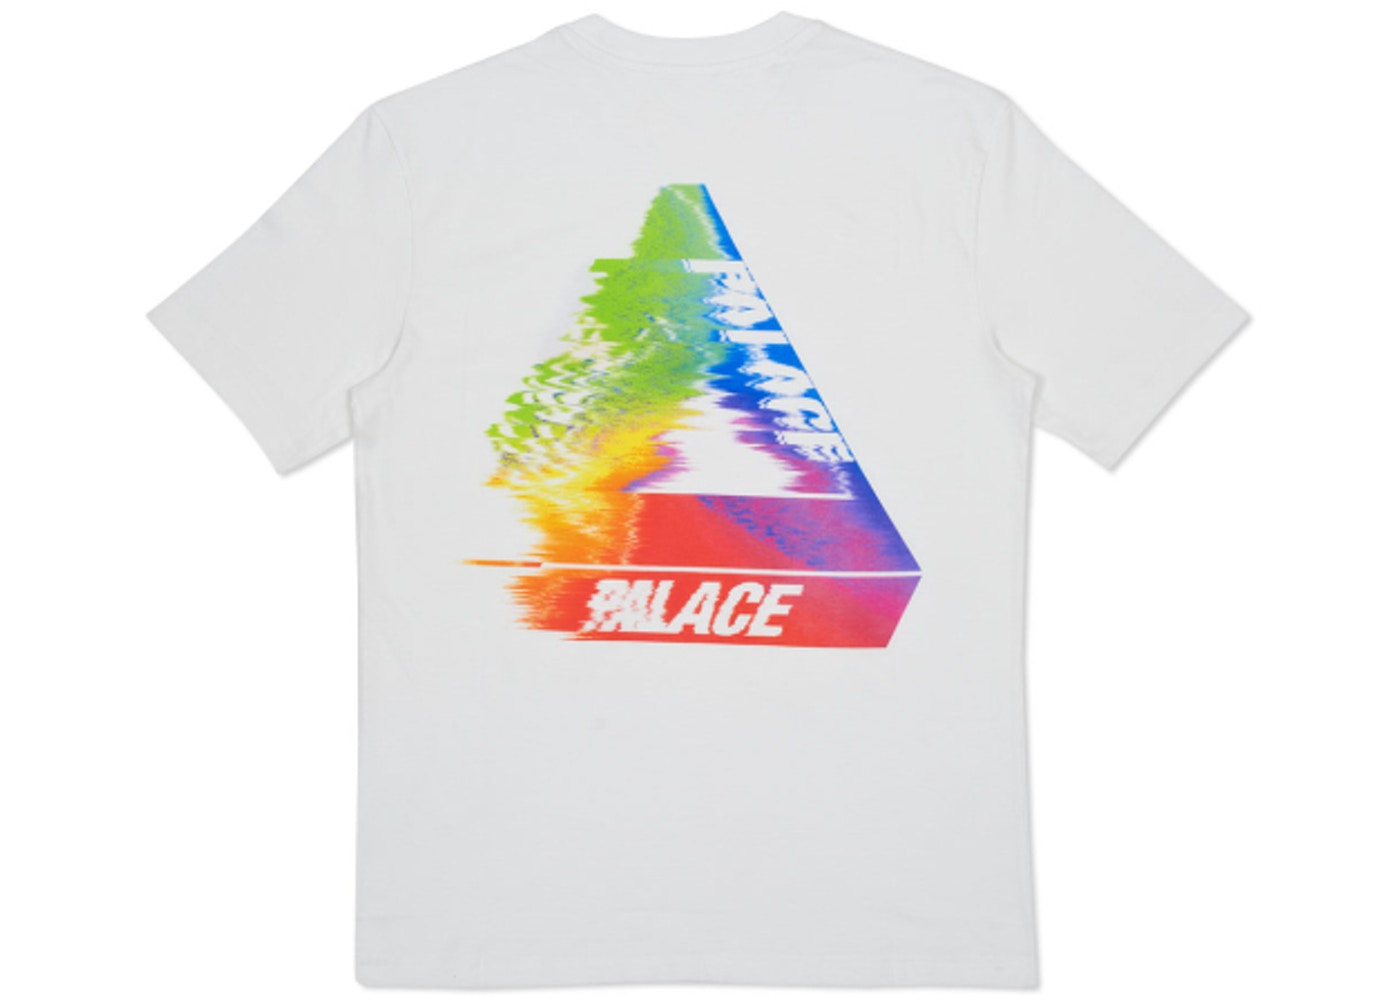 eb59305acef8 Streetwear - Palace T-Shirts - Highest Bid